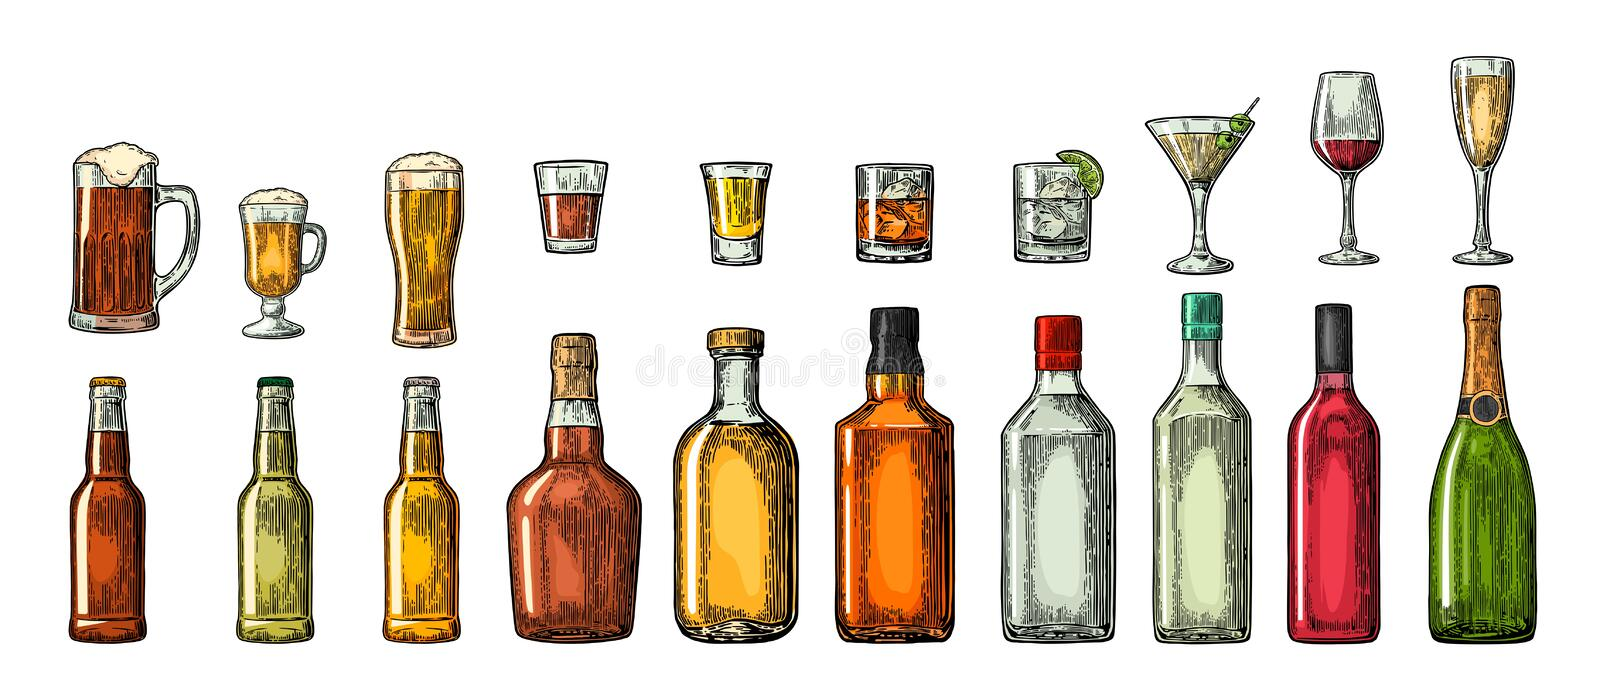 Set glass and bottle beer, whiskey, wine, gin, rum, tequila, cognac, champagne, cocktail, grog. royalty free illustration